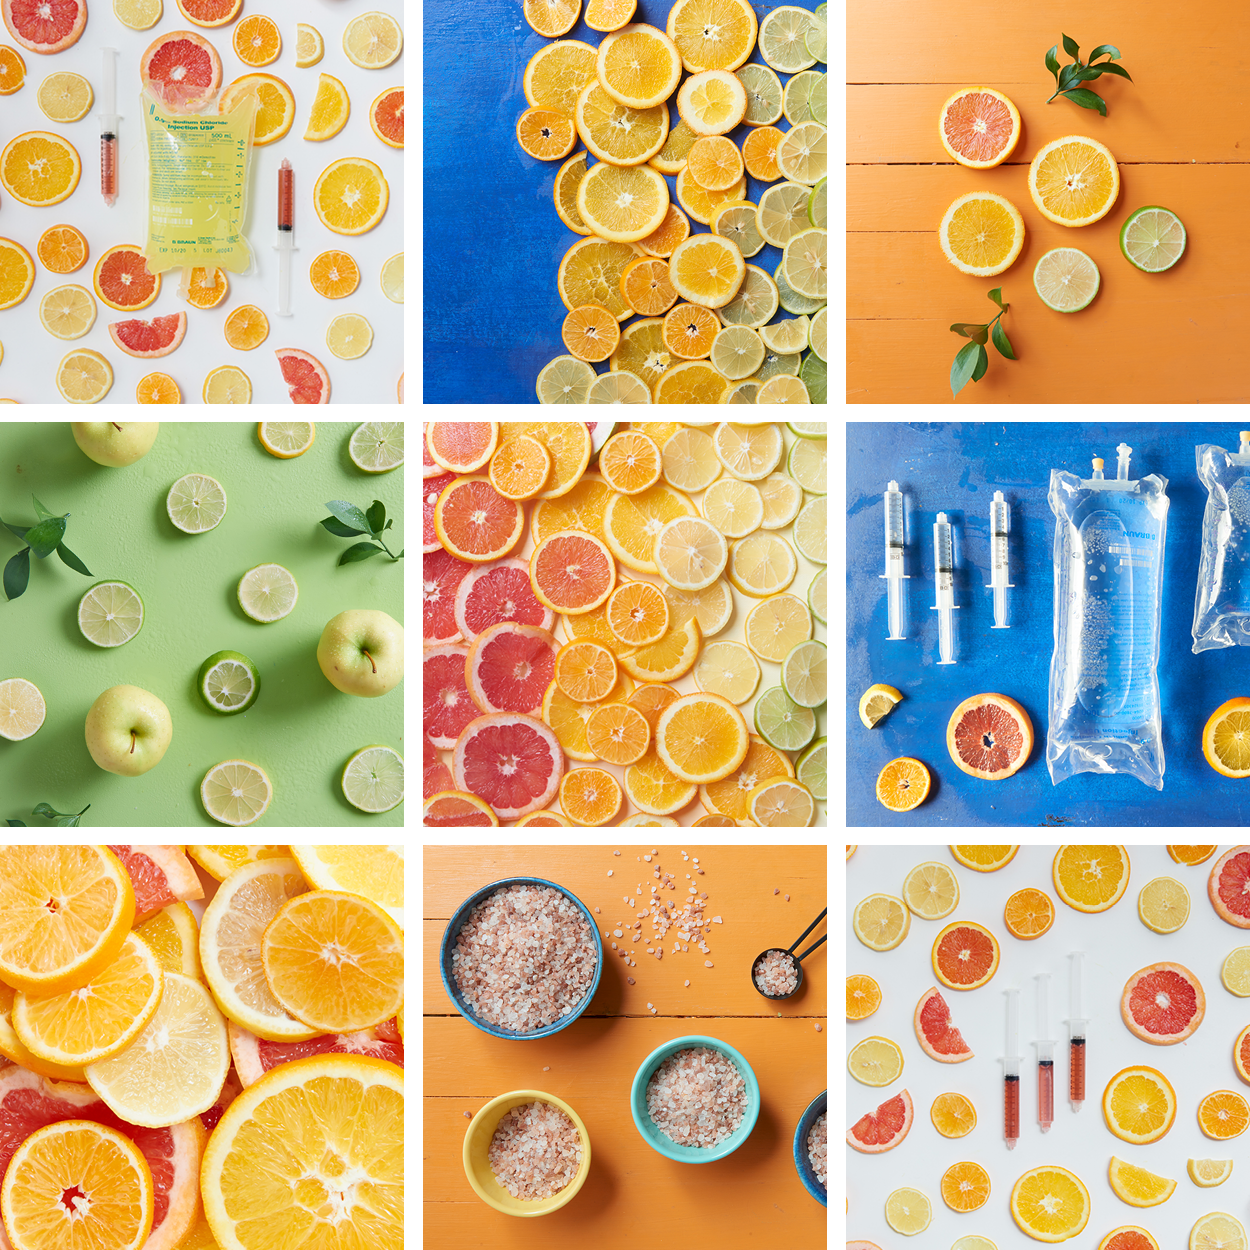 Vitahydration-brand-images3.png